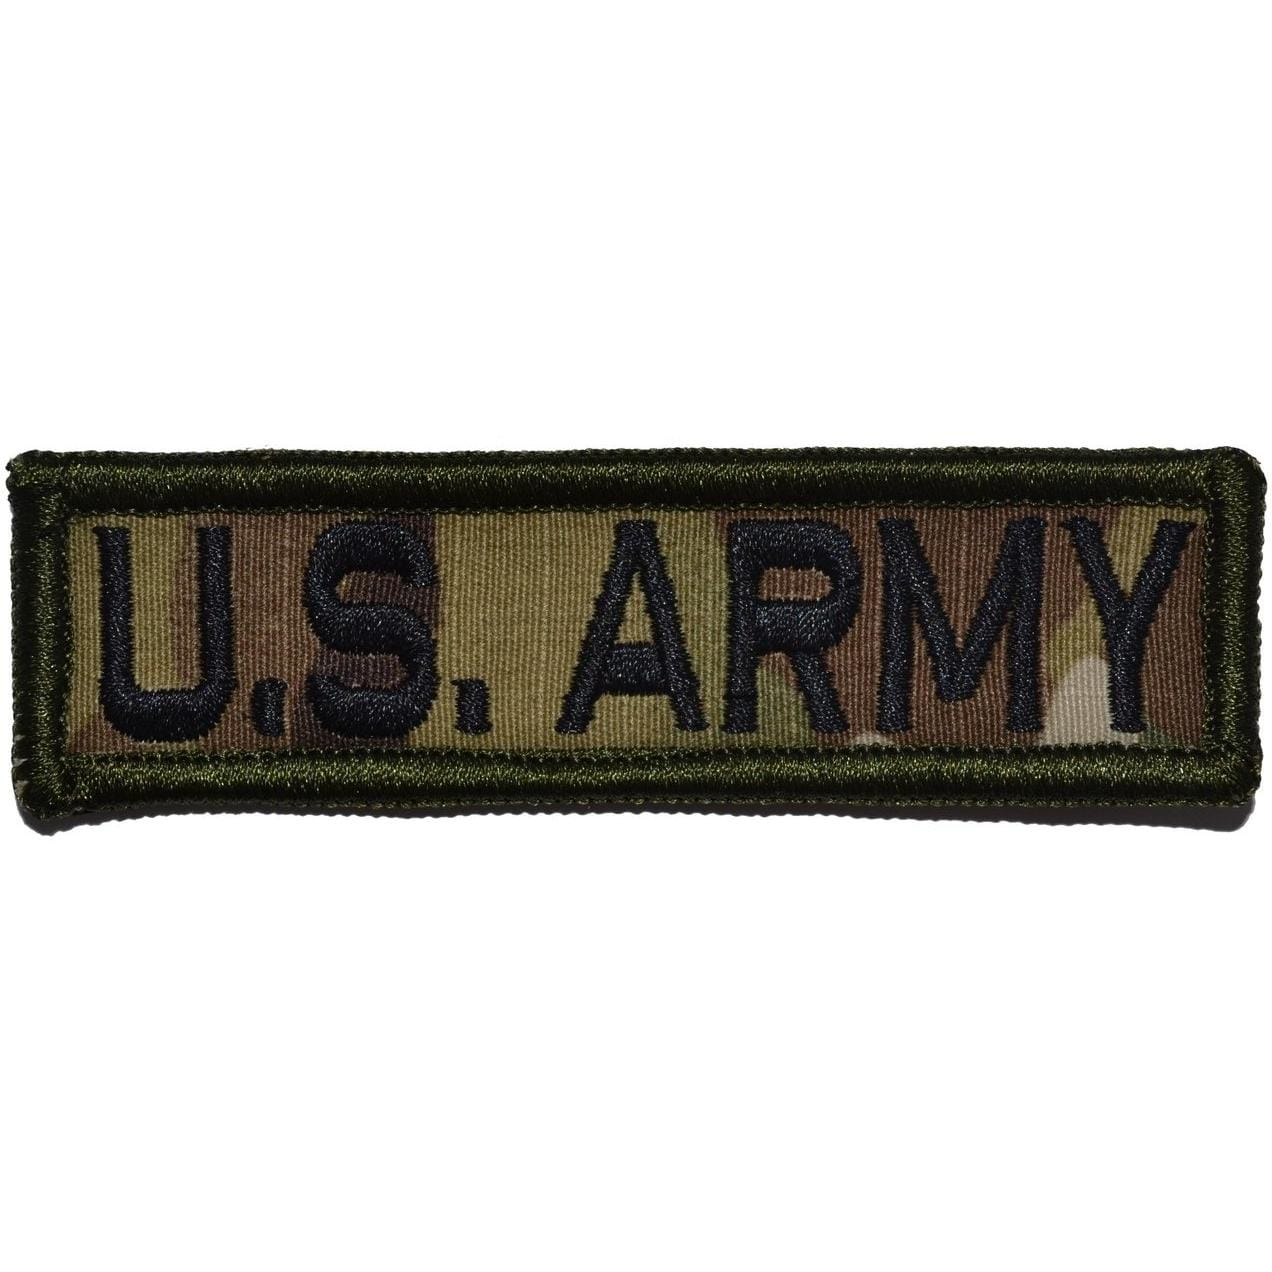 Tactical Gear Junkie Patches MultiCam U.S. Army - 1x3.75 Patch